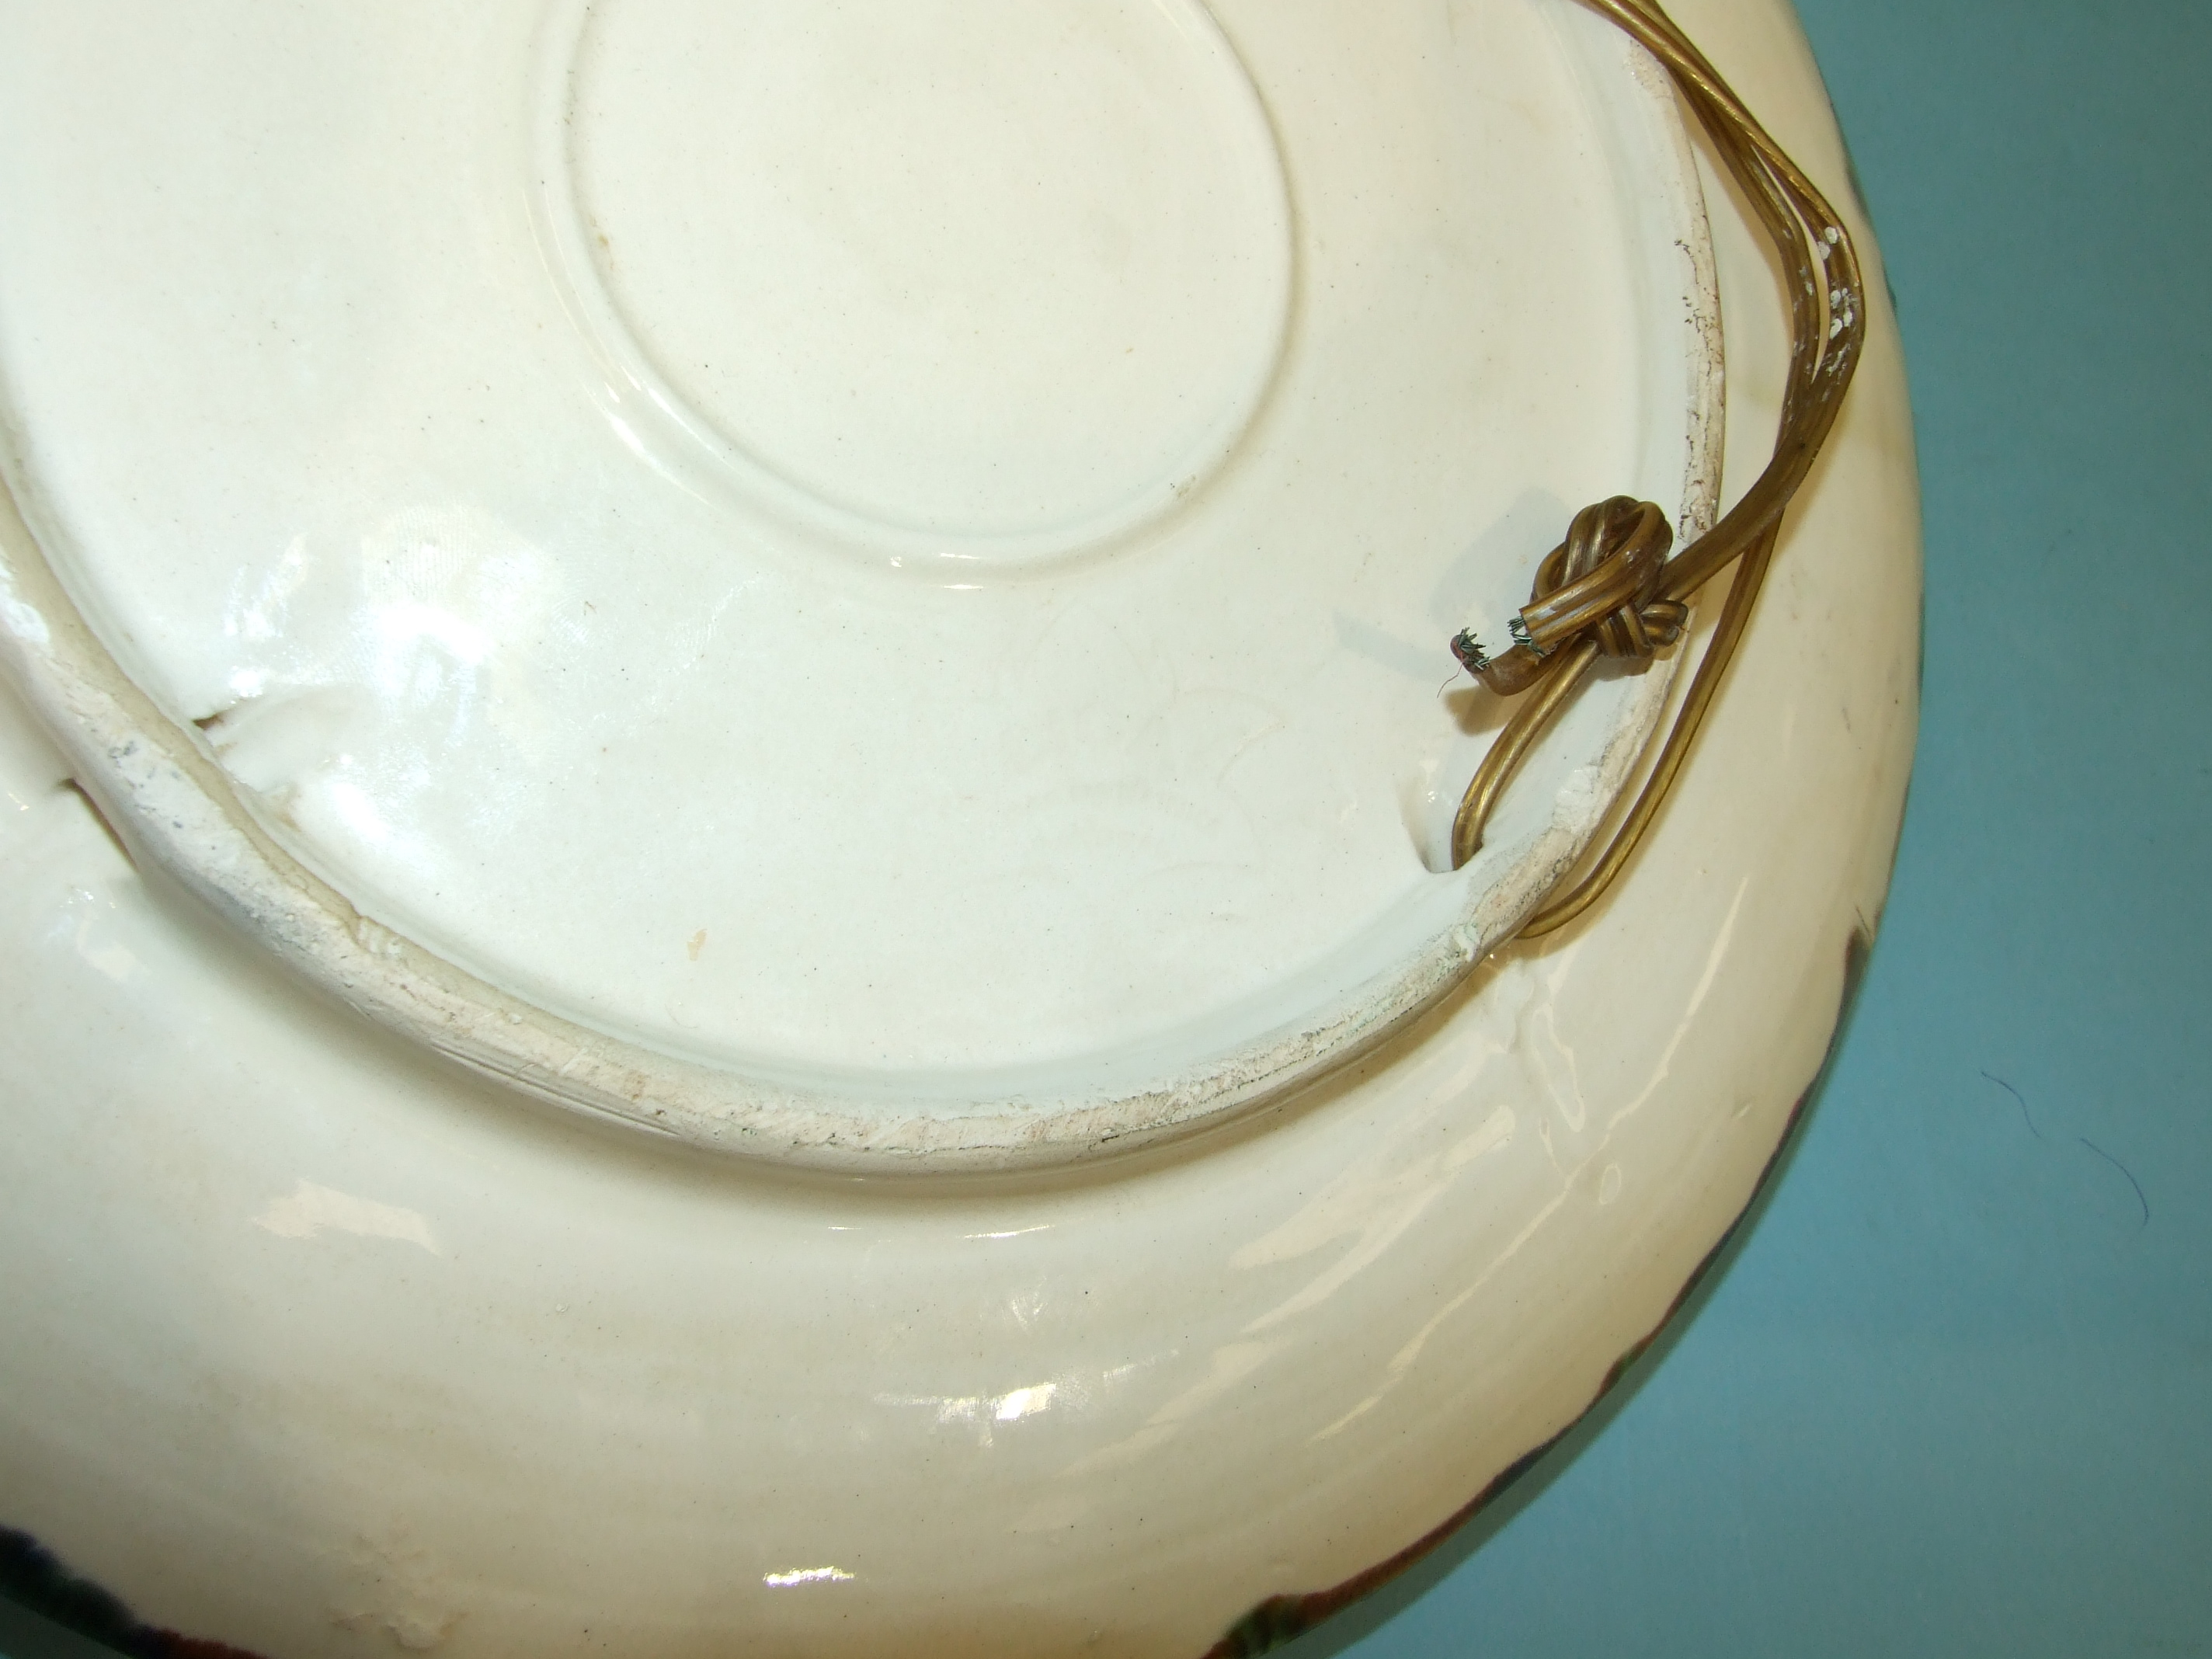 Lot 118 - A Portuguese Palissy Ware dish decorated in relief with a spider crab, mussels and other